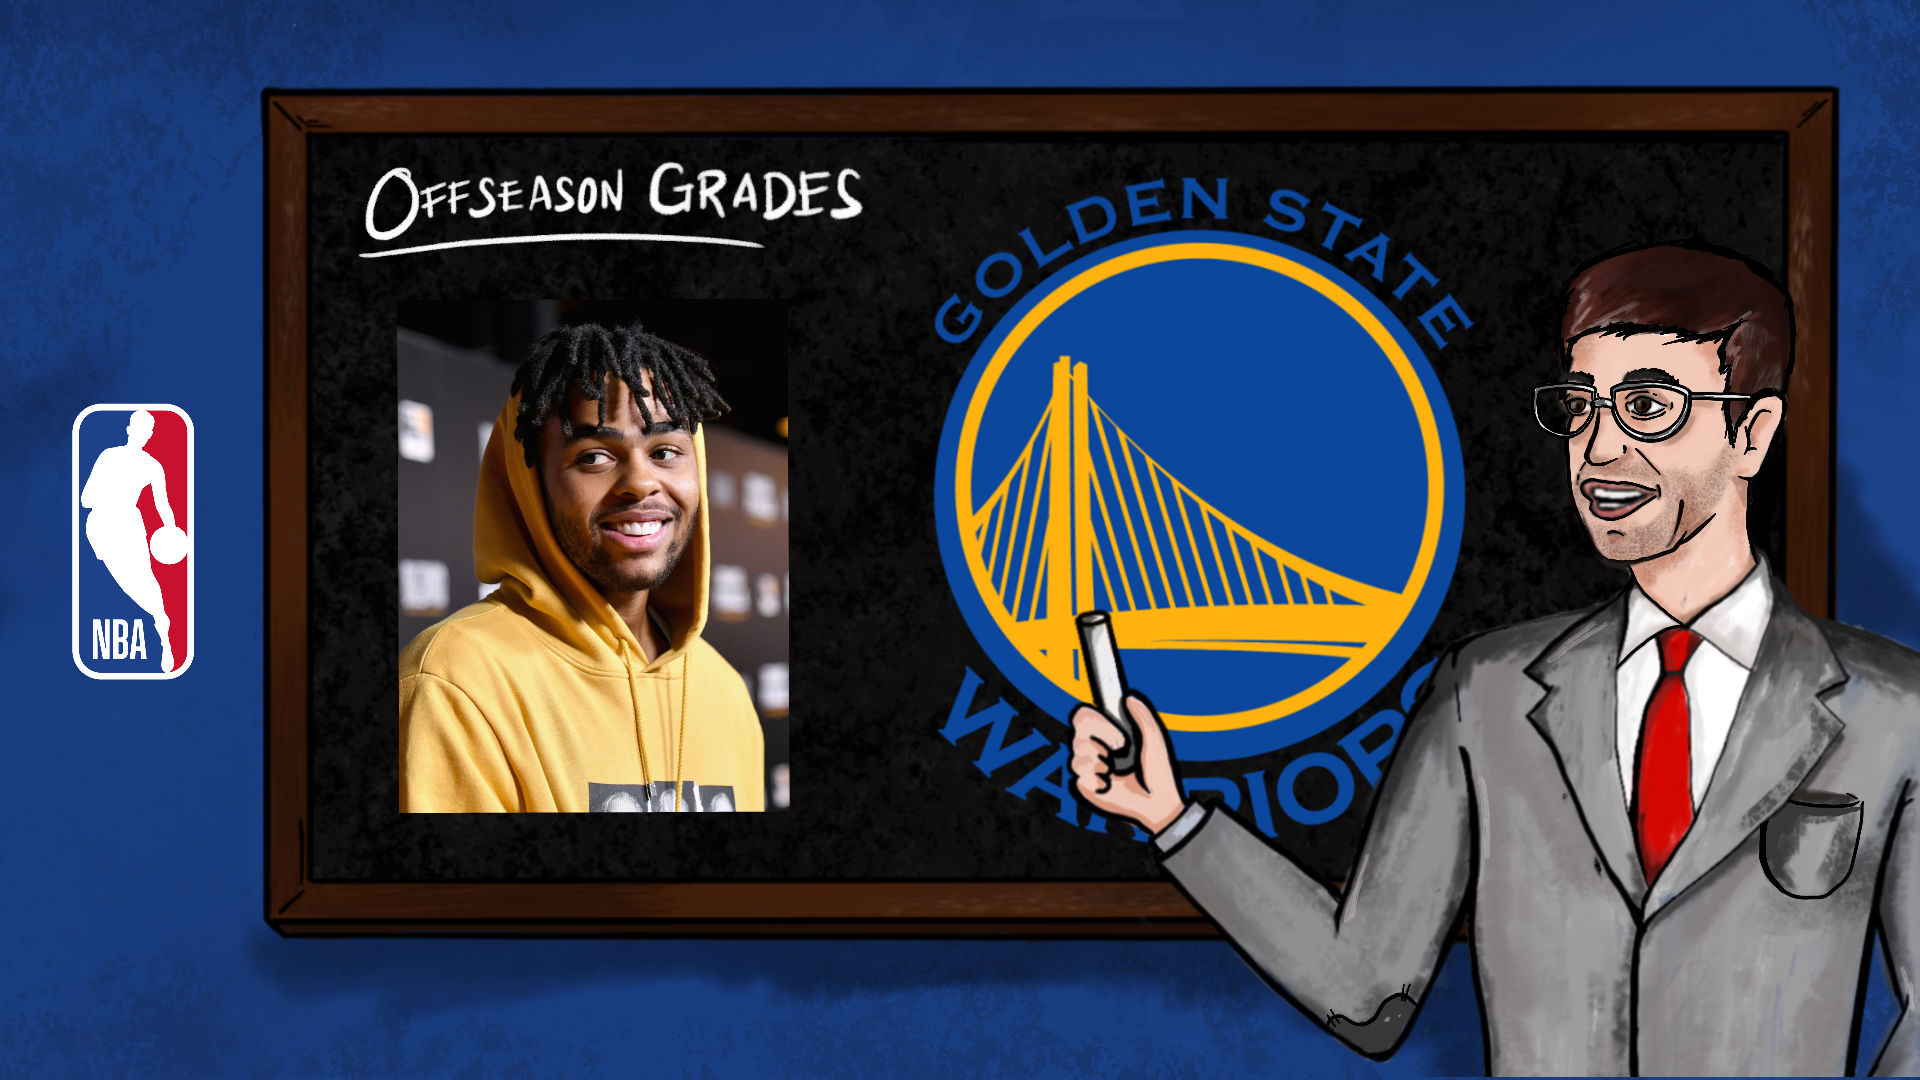 Offseason Grades: How did the Golden State Warriors bounce back from losing Kevin Durant in free agency?